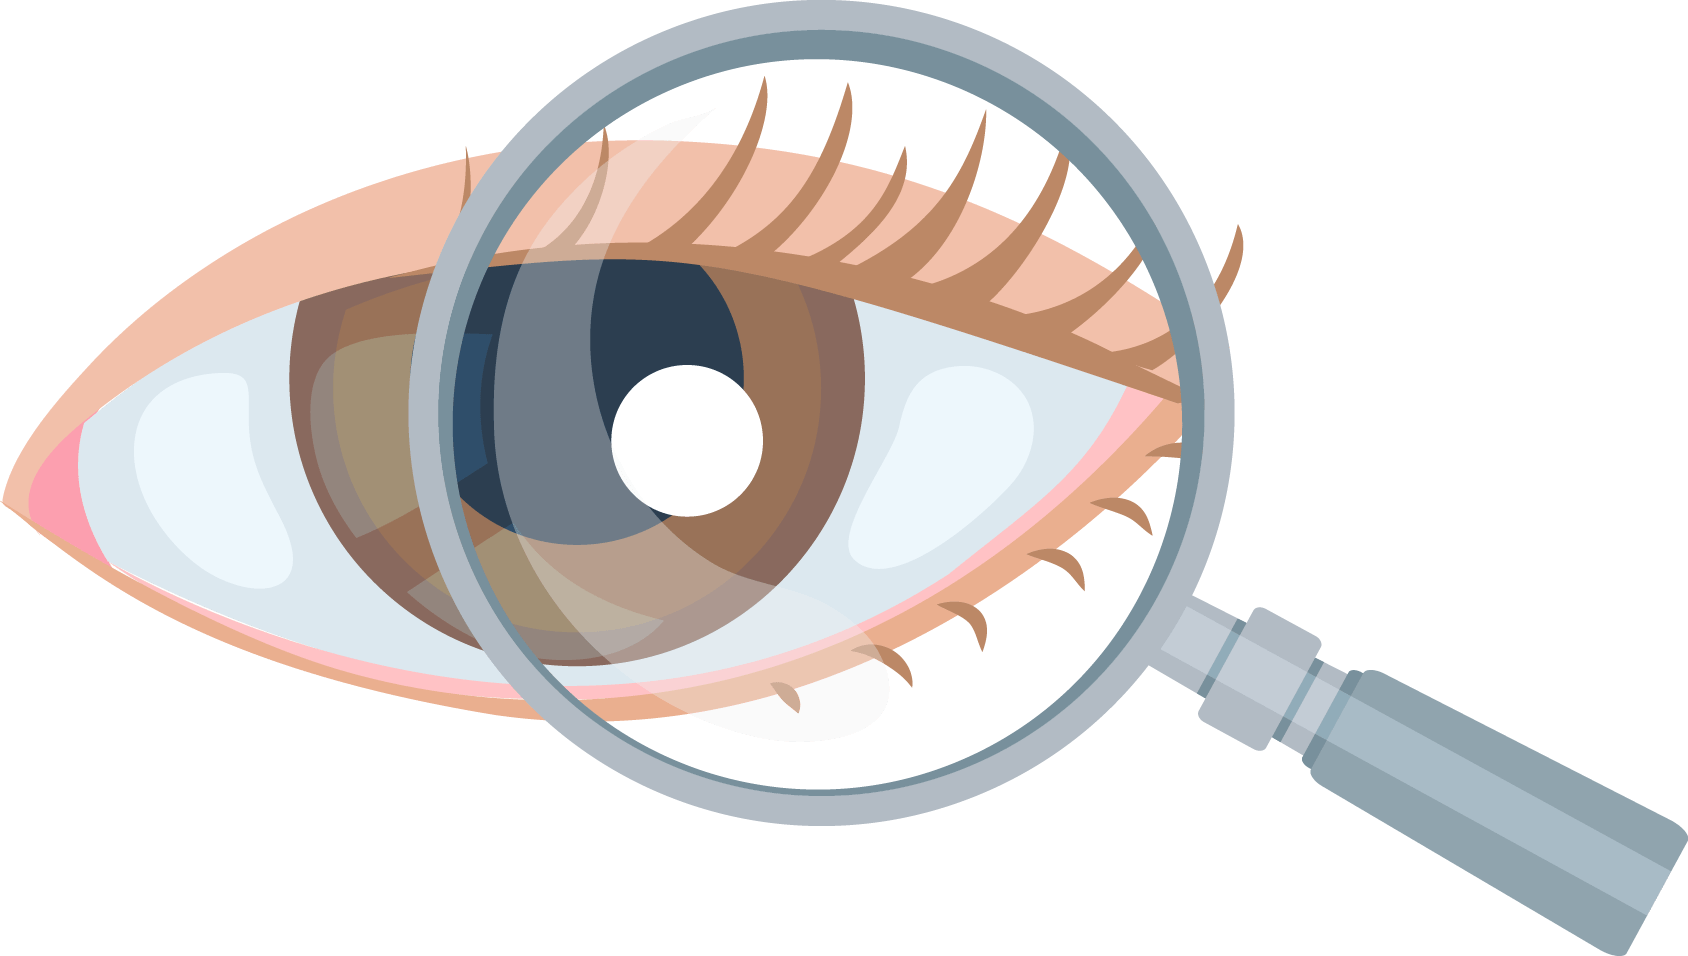 Eyes Clipart Magnifying Glass Eyes Magnifying Glass